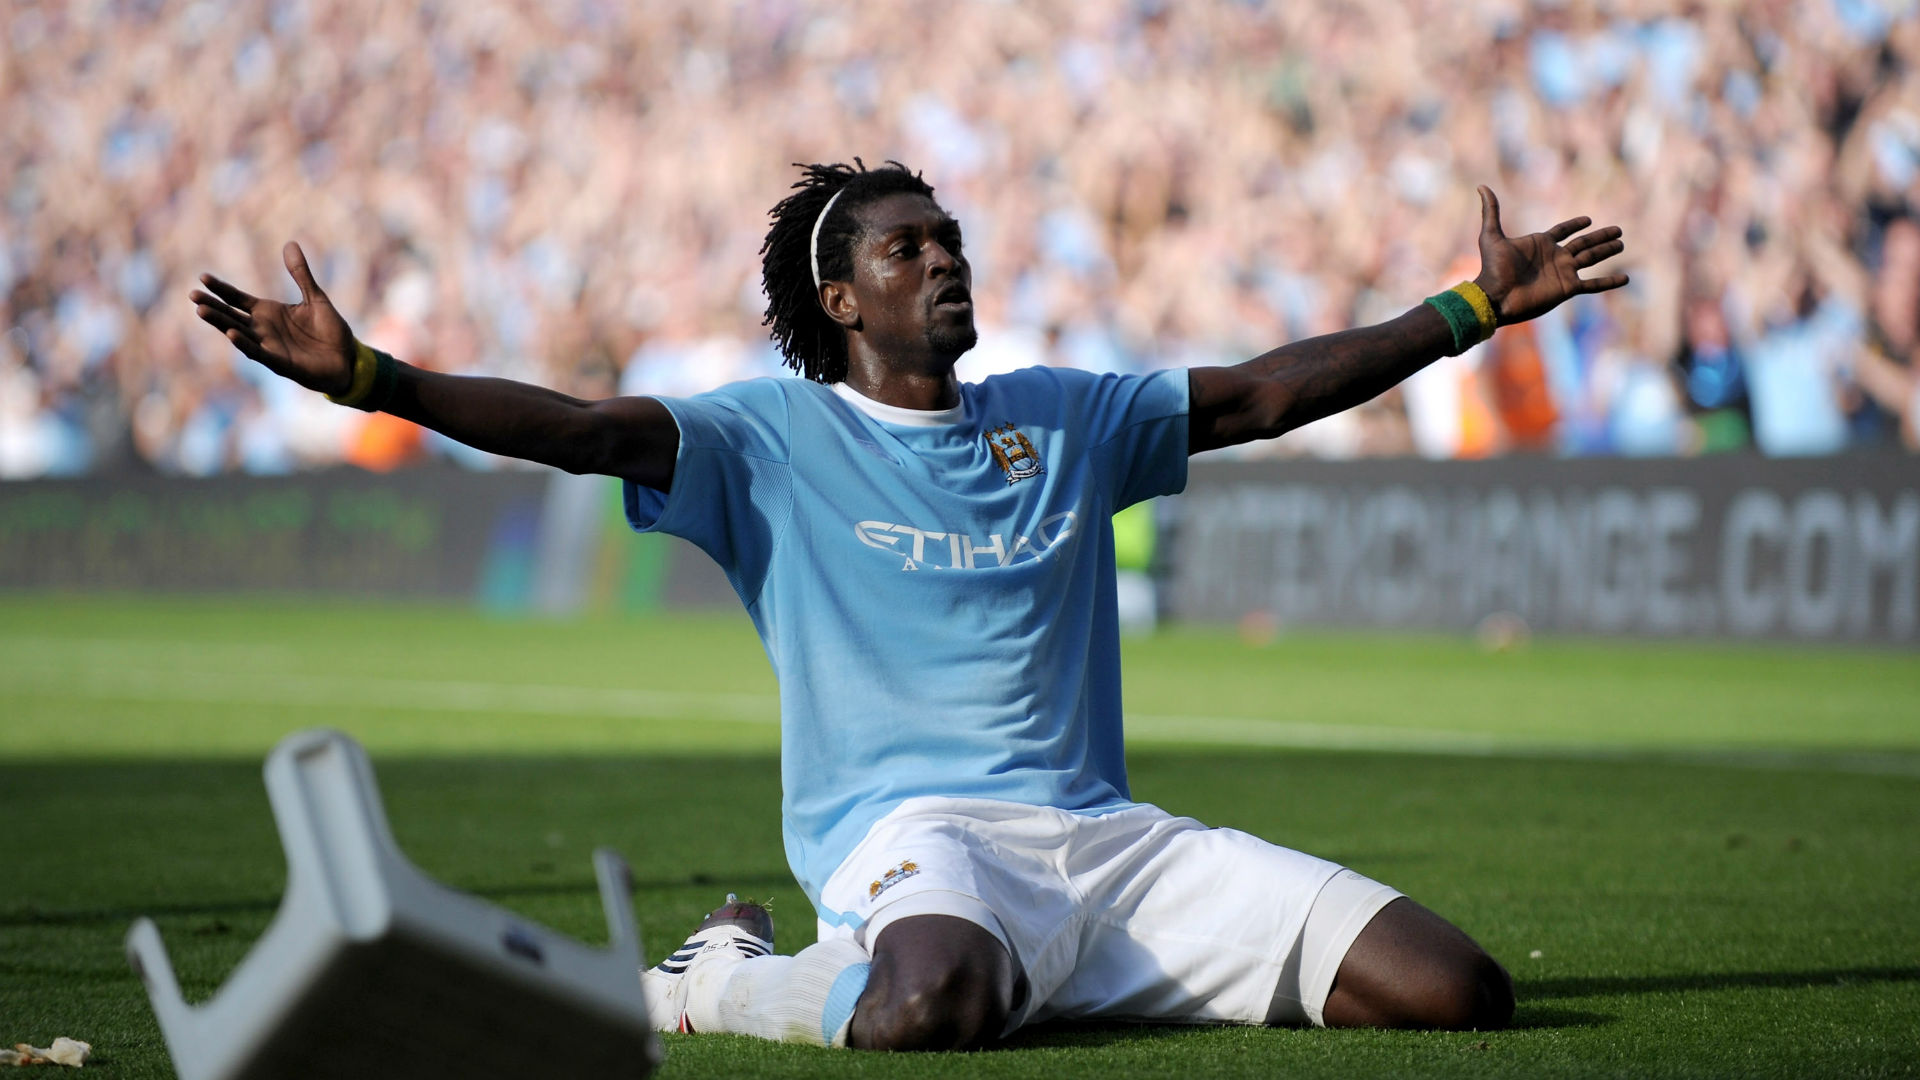 Adebayor claims racism motivated infamous celebration